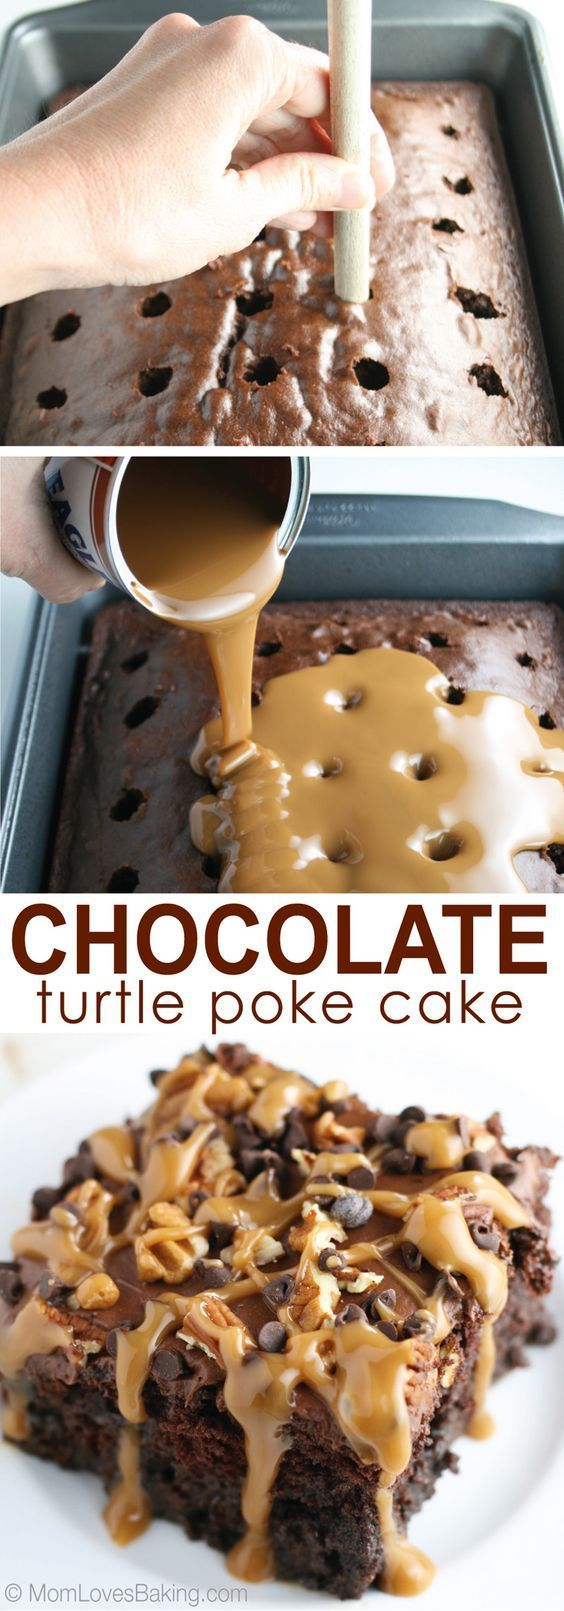 If you're a fan of chocolate turtles, you'll love this cake. It's ooey, gooey good & easy to make using Eagle Brand Sweetened Condensed Milk limited edition flavors - caramel & chocolate!: